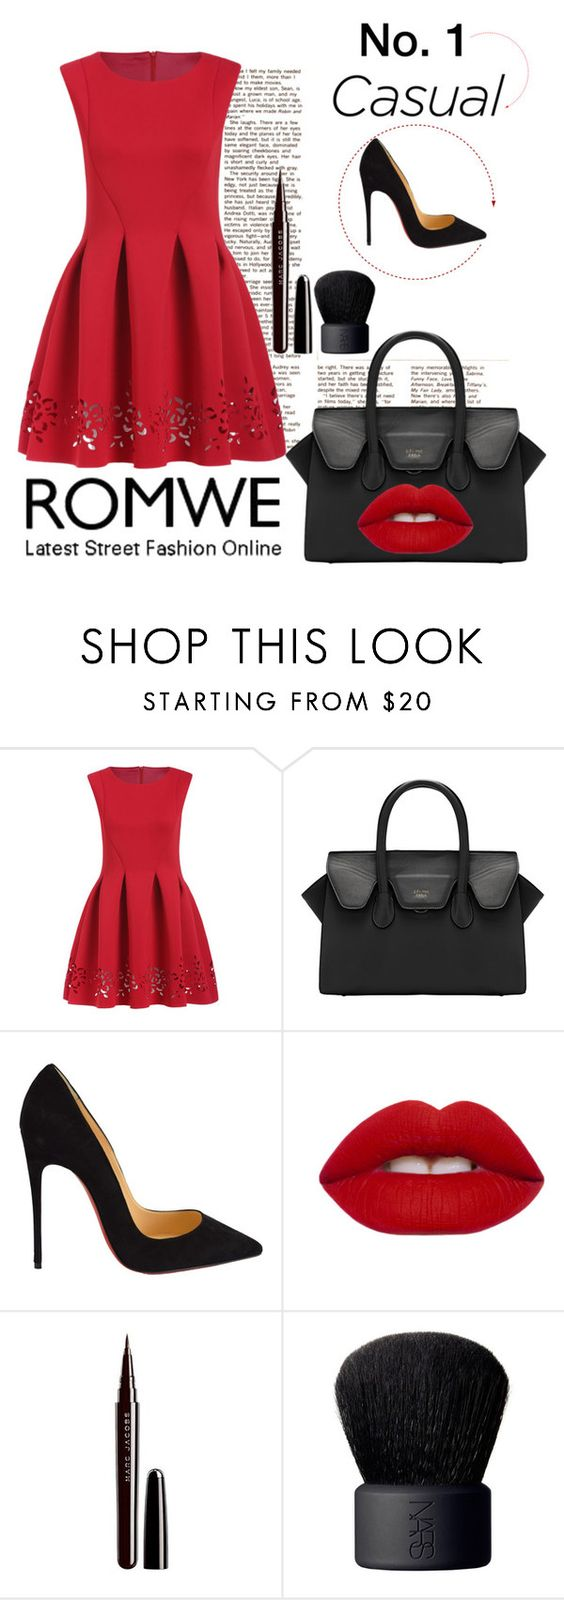 """""""Romwe 3"""" by mersida-1 ❤ liked on Polyvore featuring Christian Louboutin, Lime Crime, Marc Jacobs, NARS Cosmetics and romwe"""